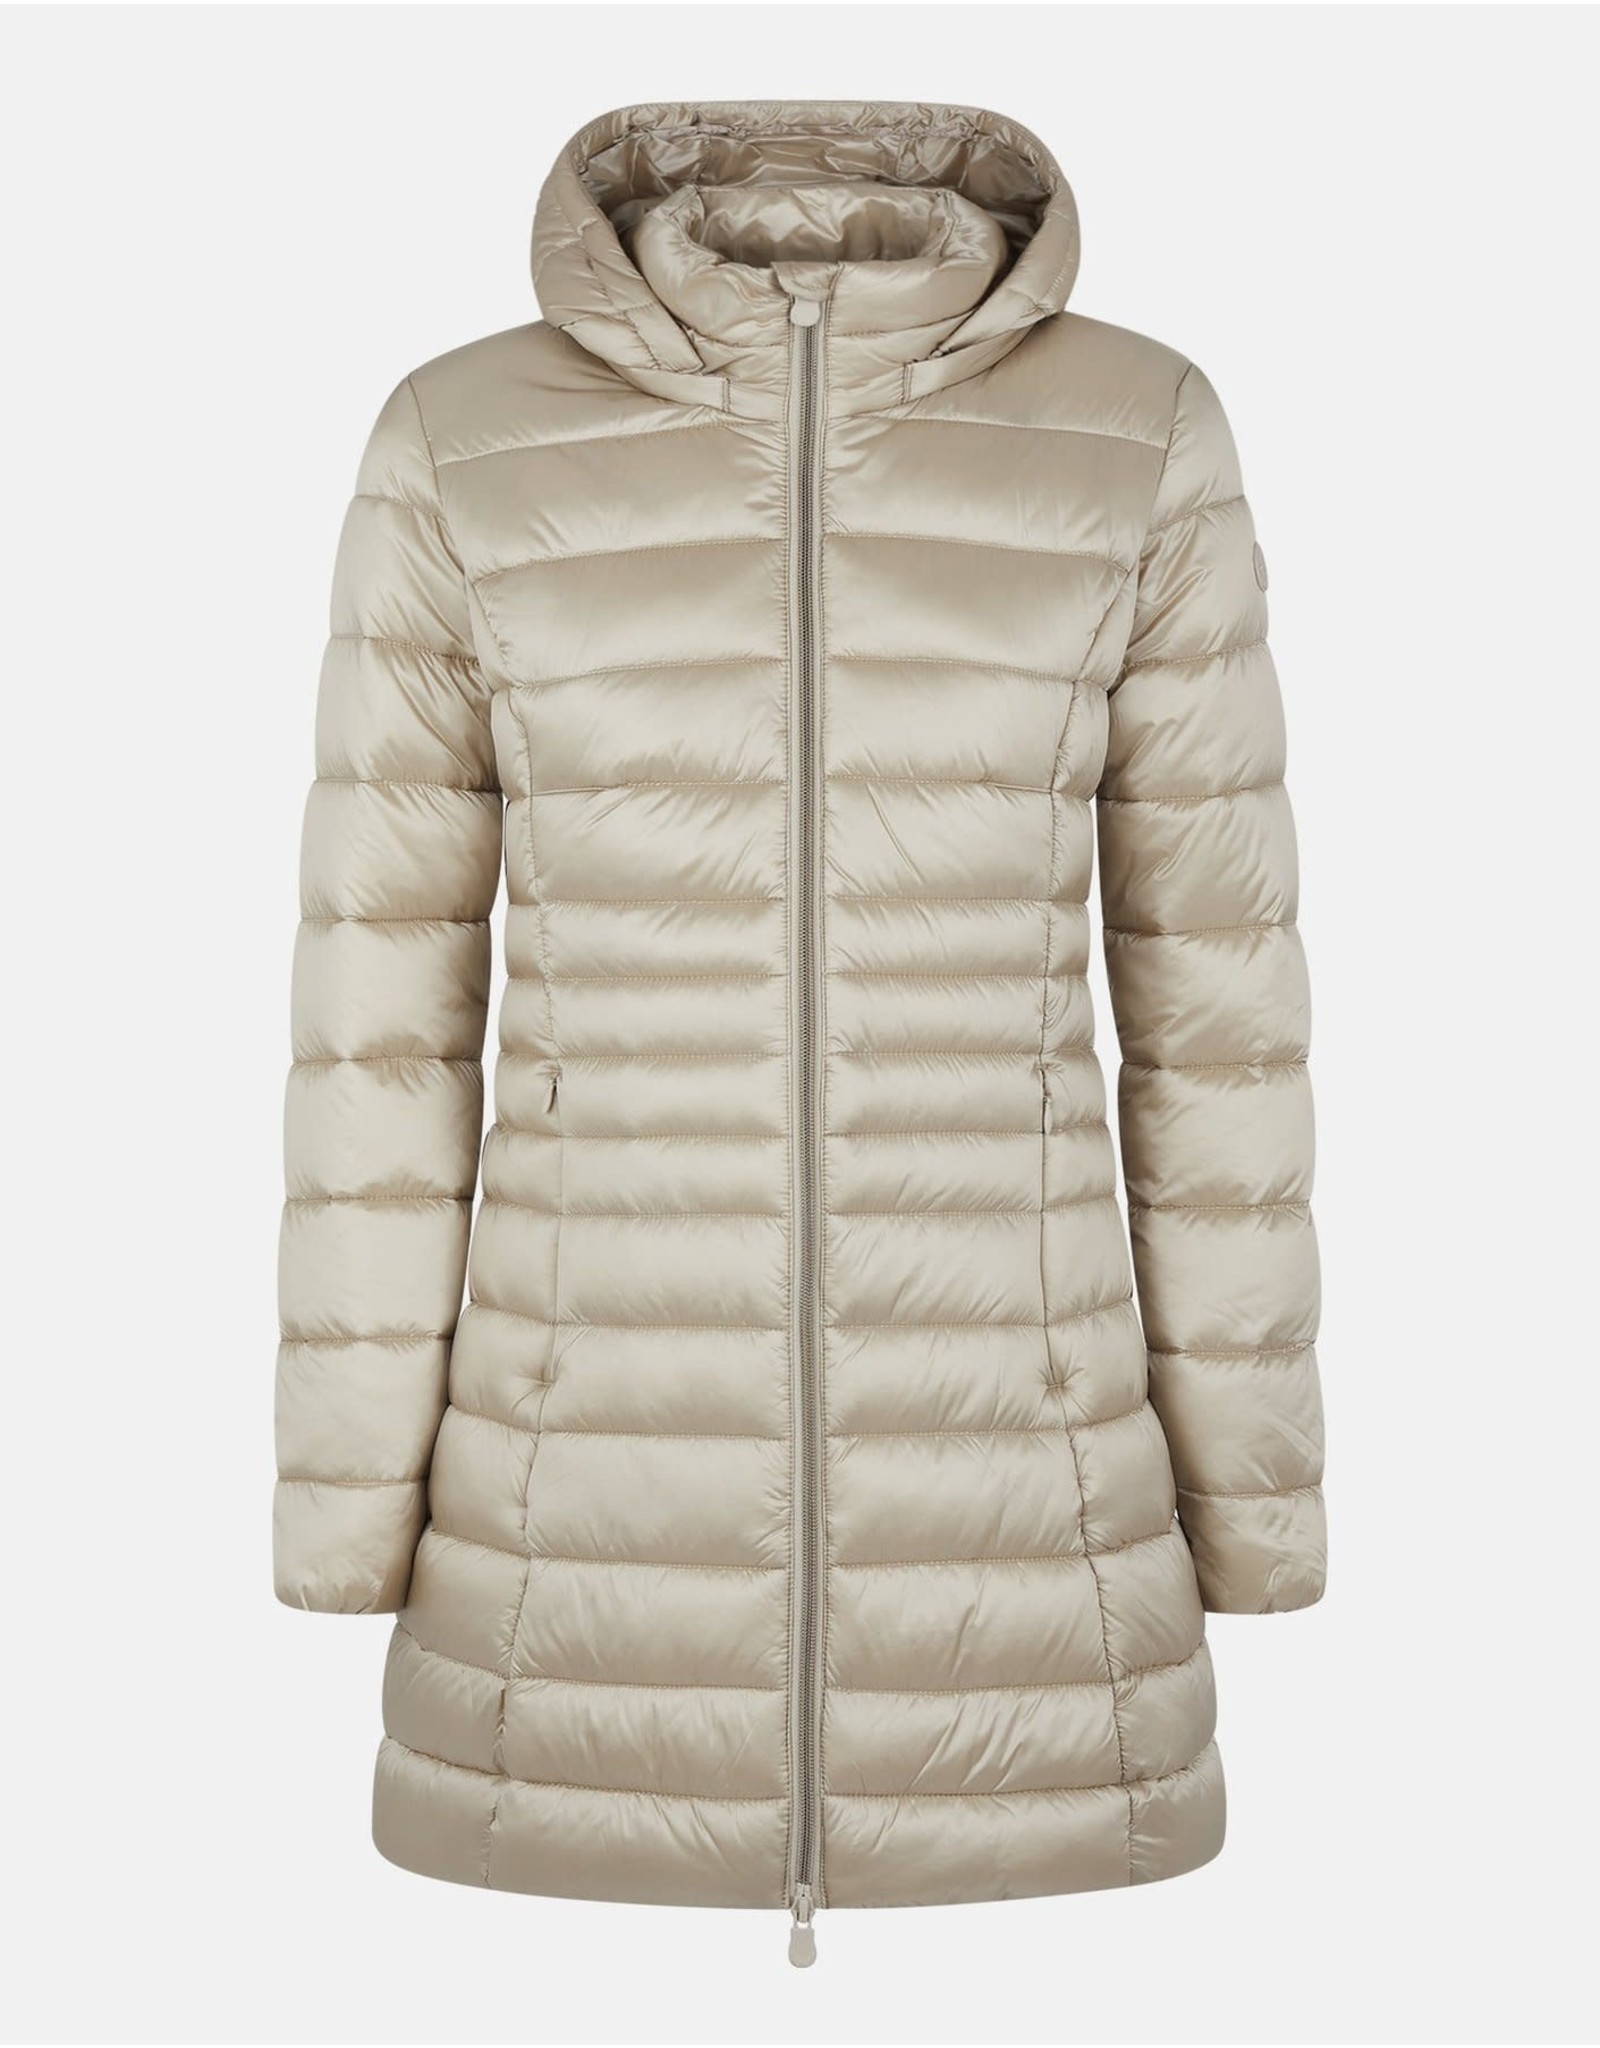 Save the Duck Save the Duck Iris Hooded Jacket